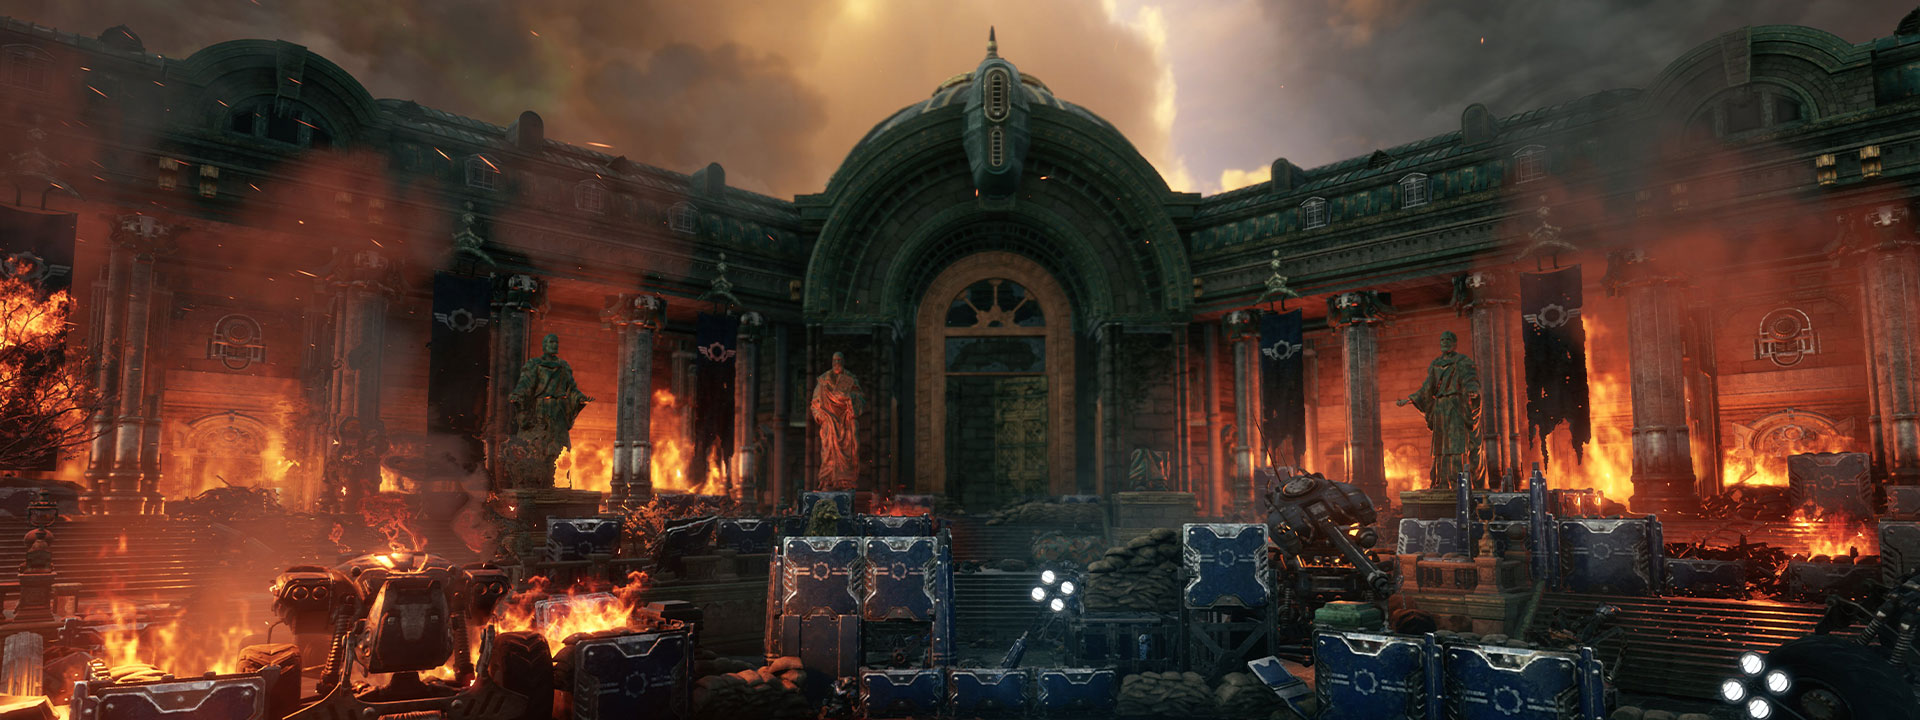 Burning building from Gears Tactics